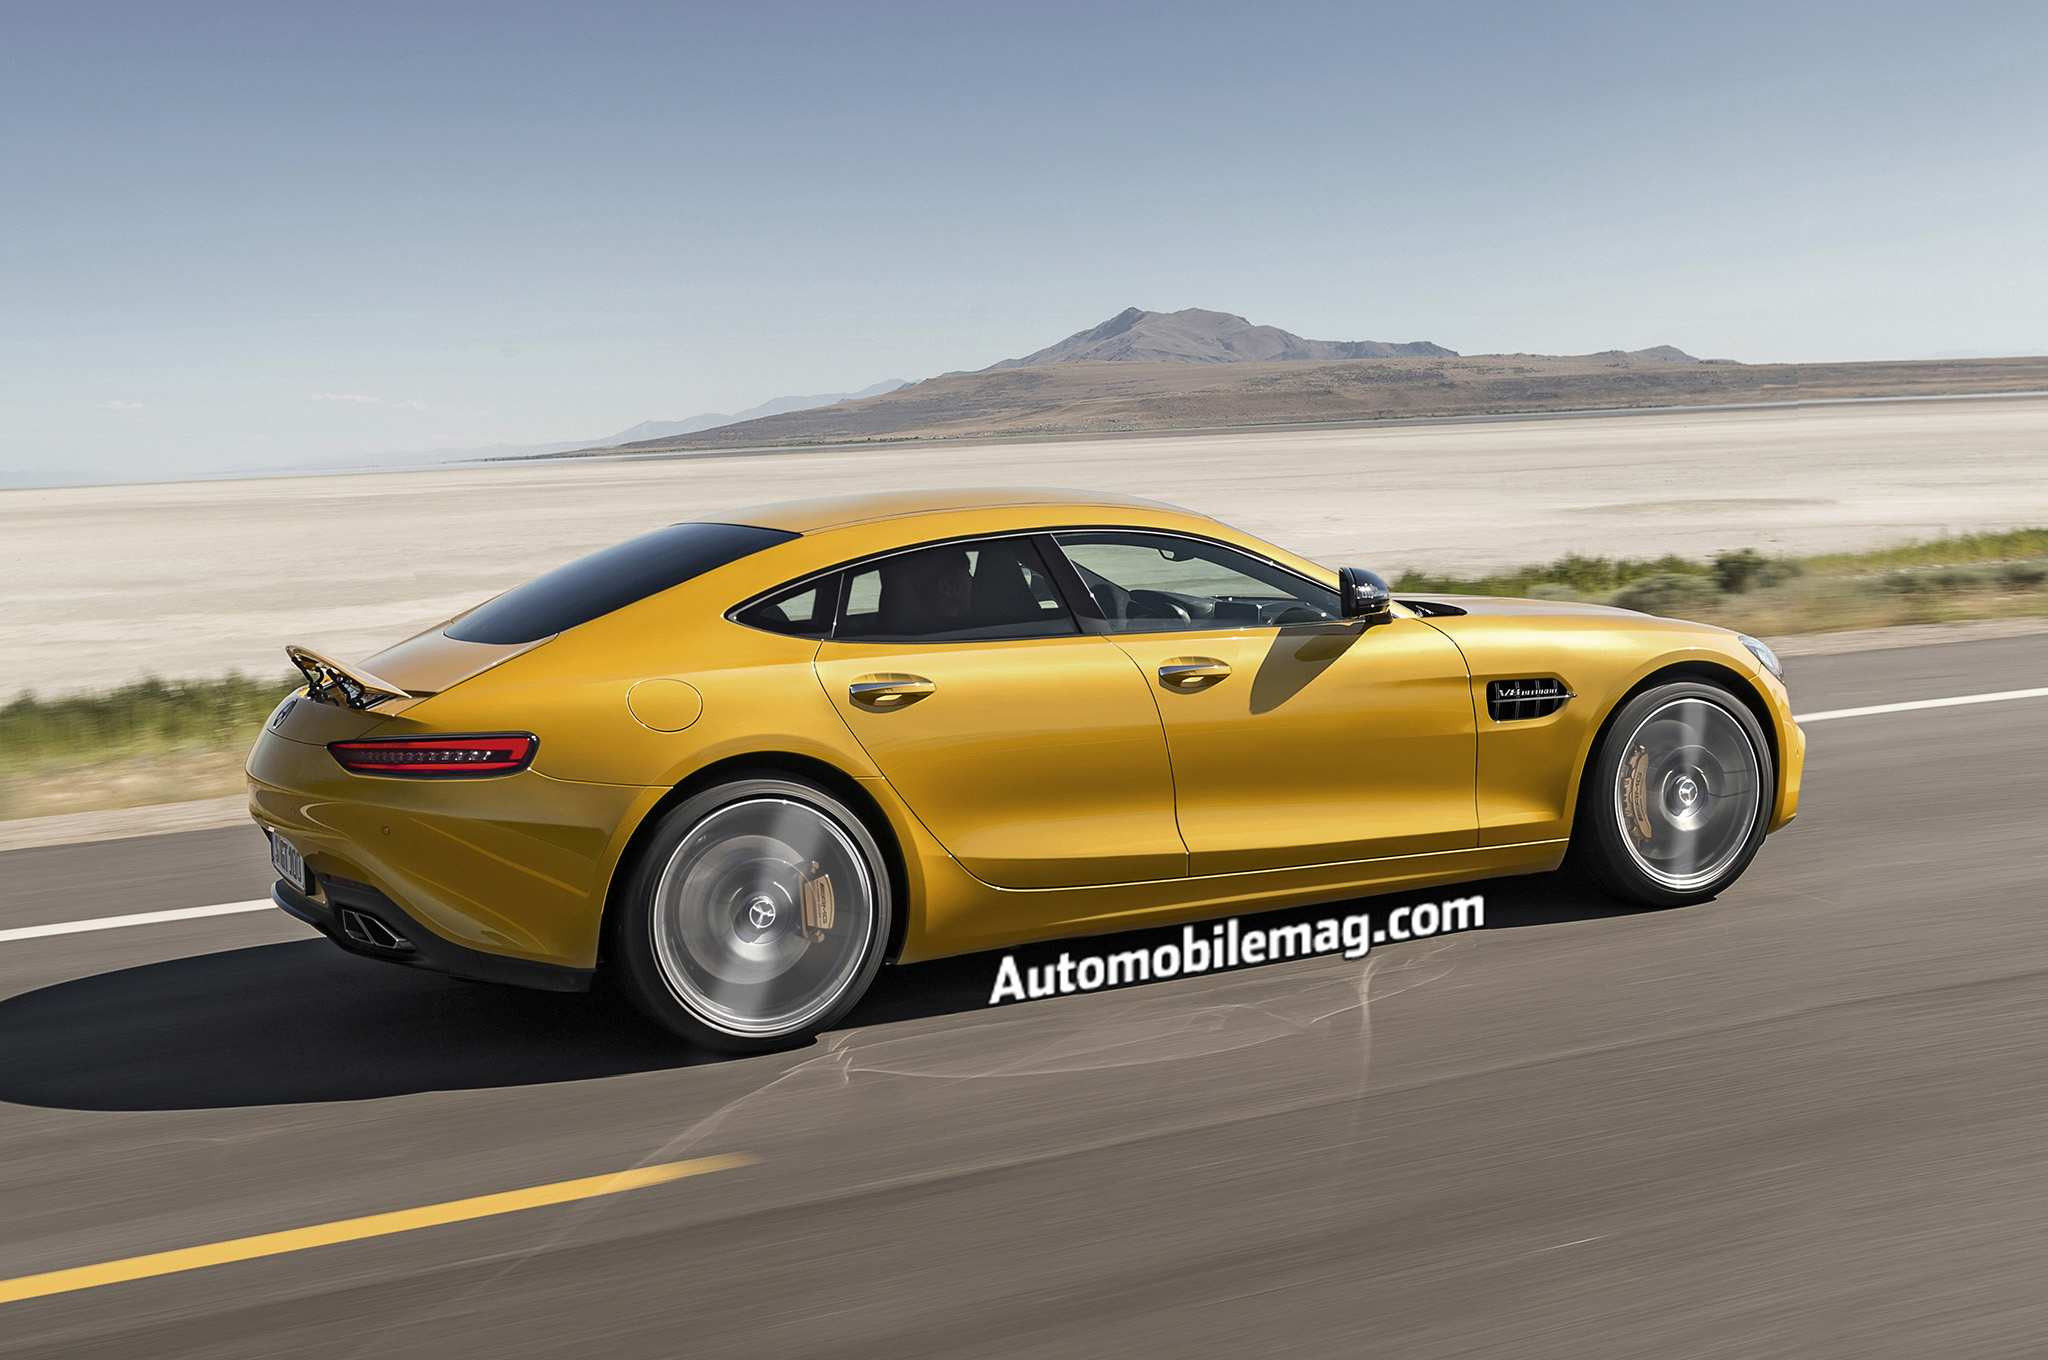 62 All New Mercedes 2019 Amg Gt4 Picture